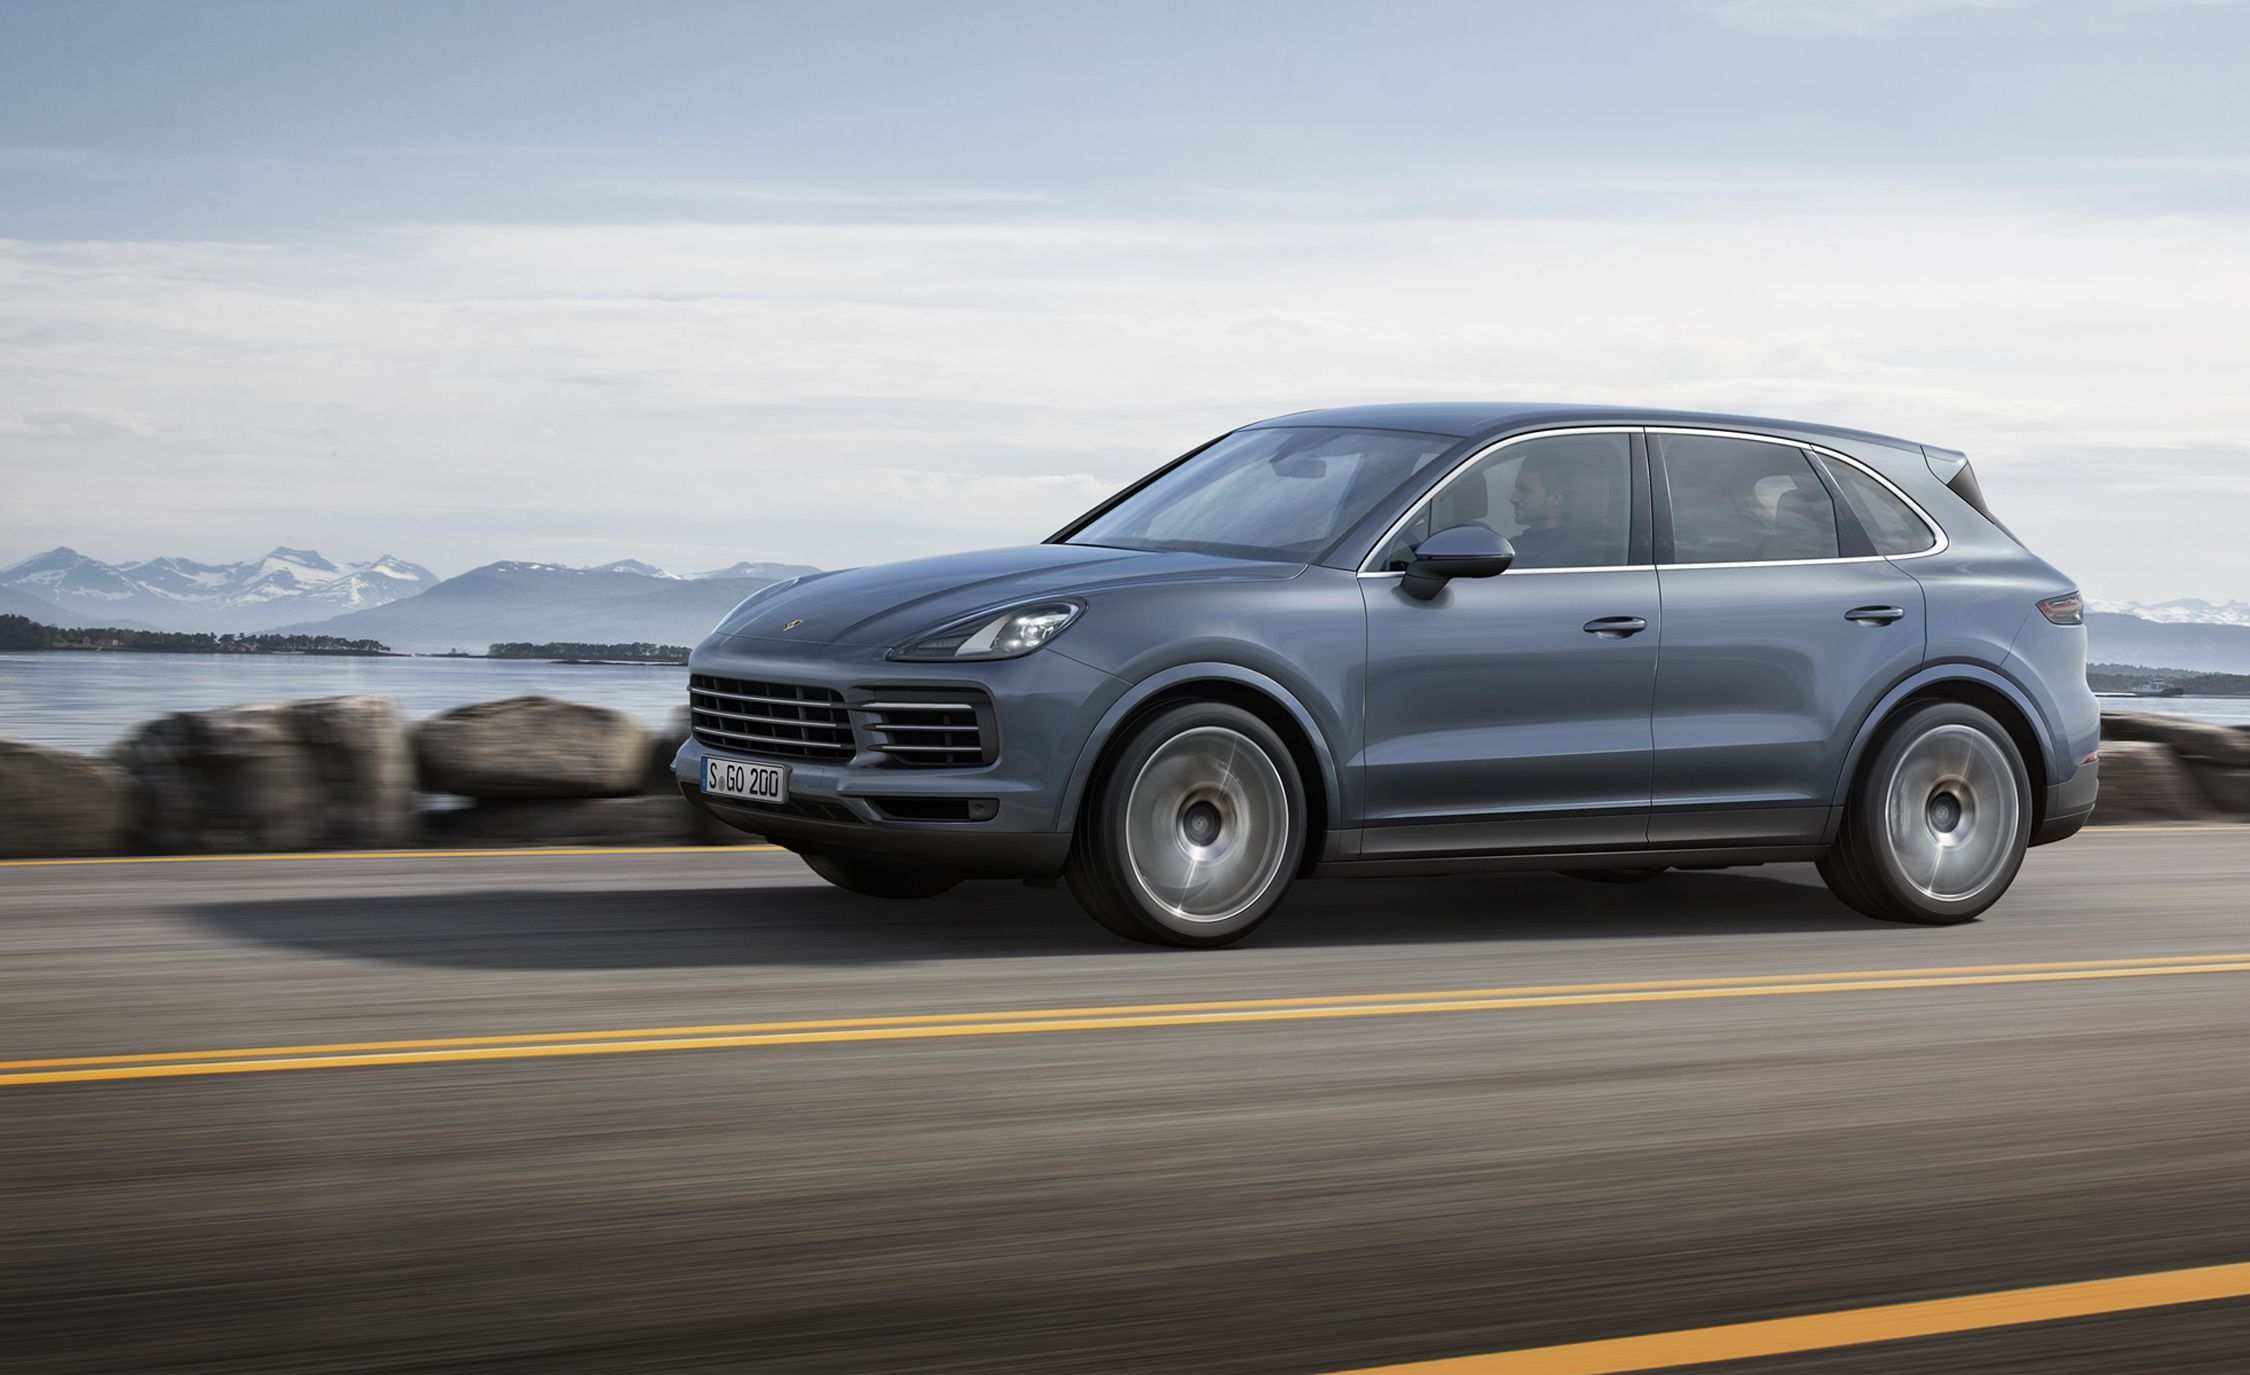 11 Gallery of 2019 Porsche Cayenne Turbo Review Research New by 2019 Porsche Cayenne Turbo Review